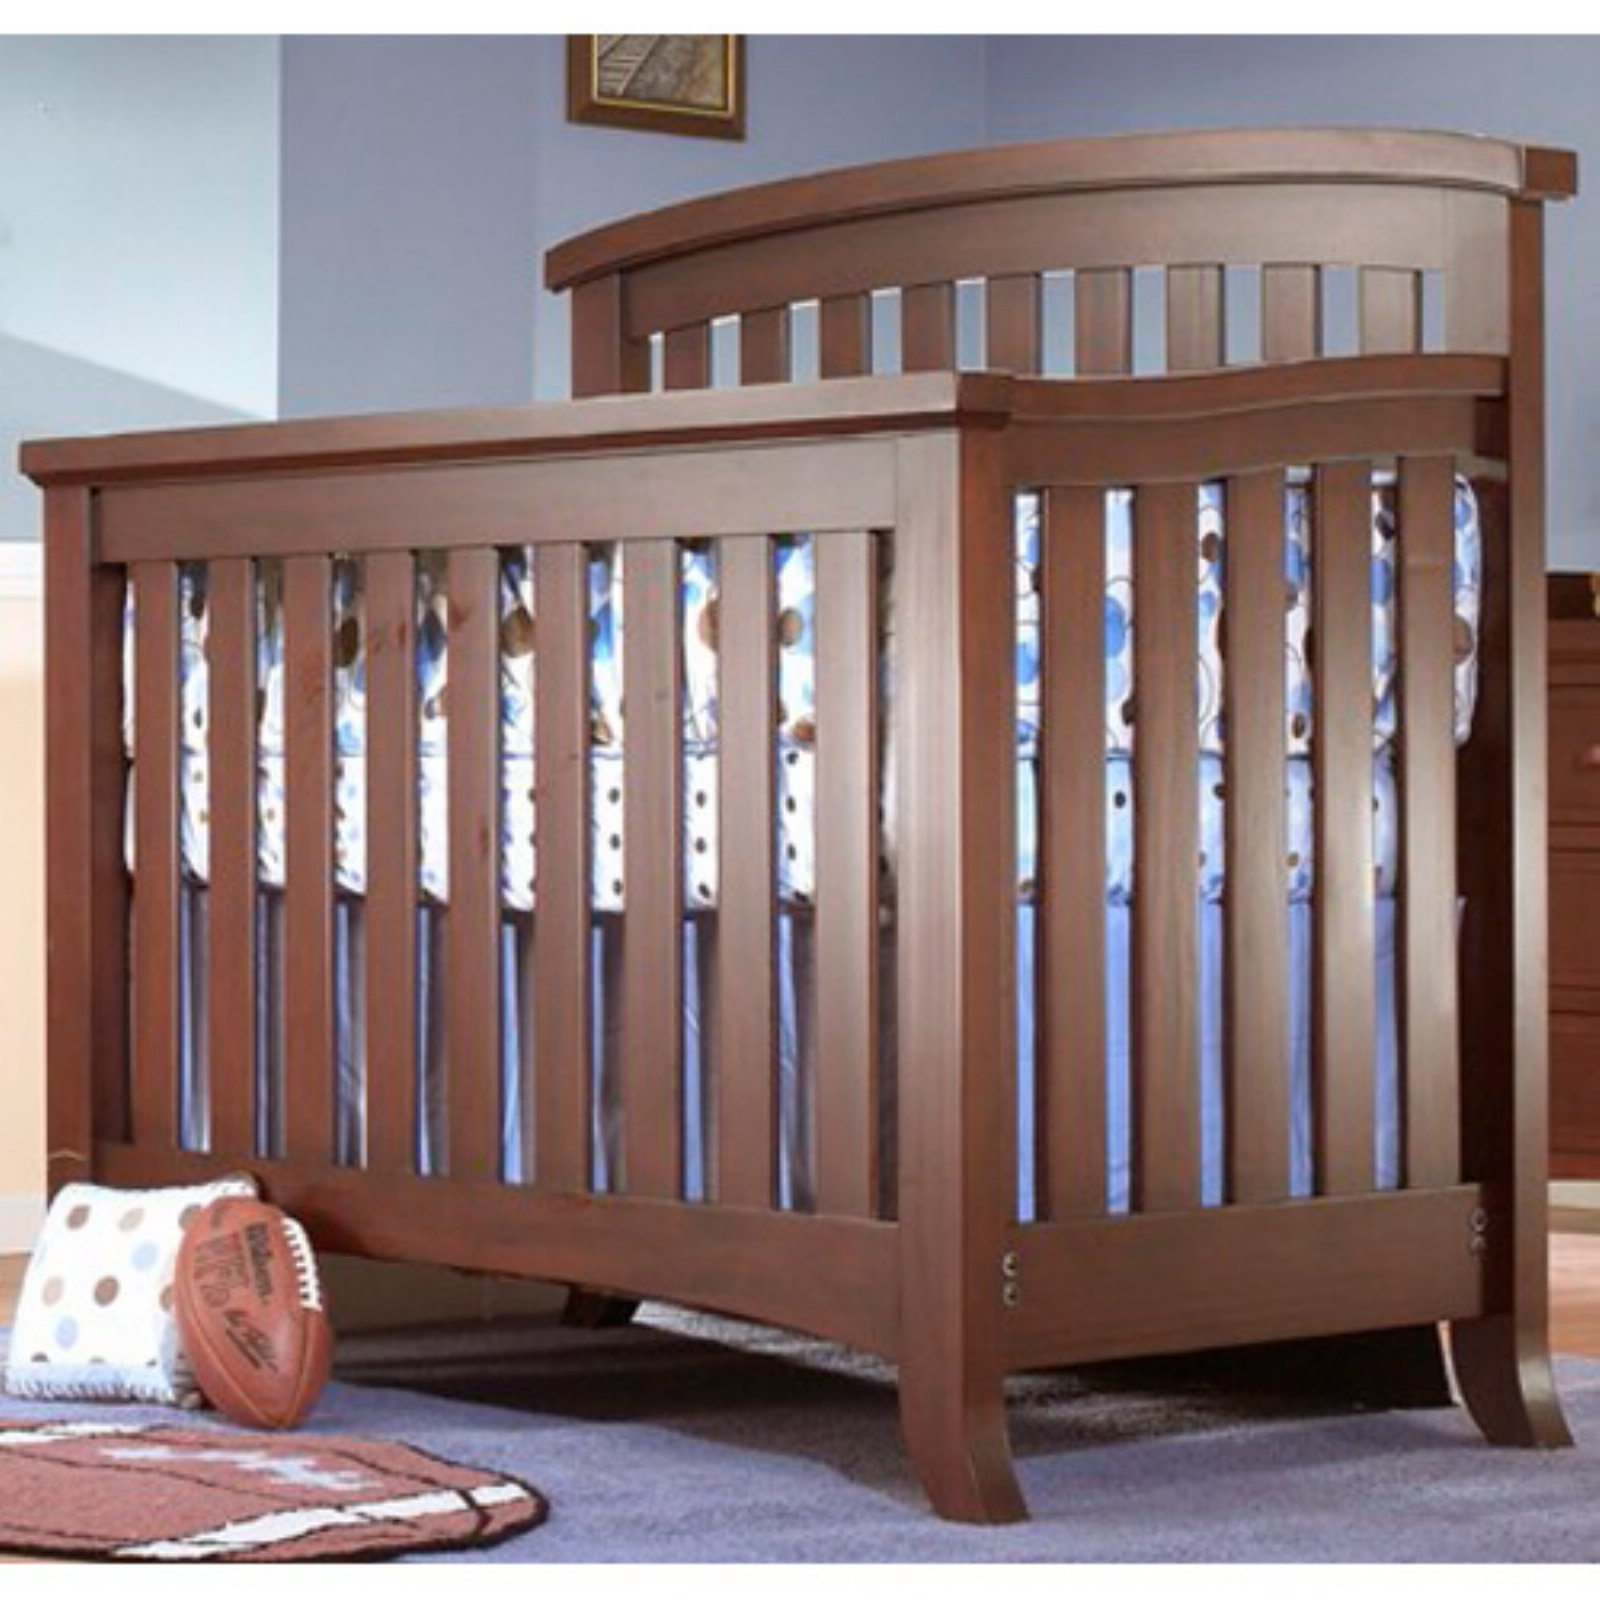 Sorelle Furniture Alex 4 in 1 Crib